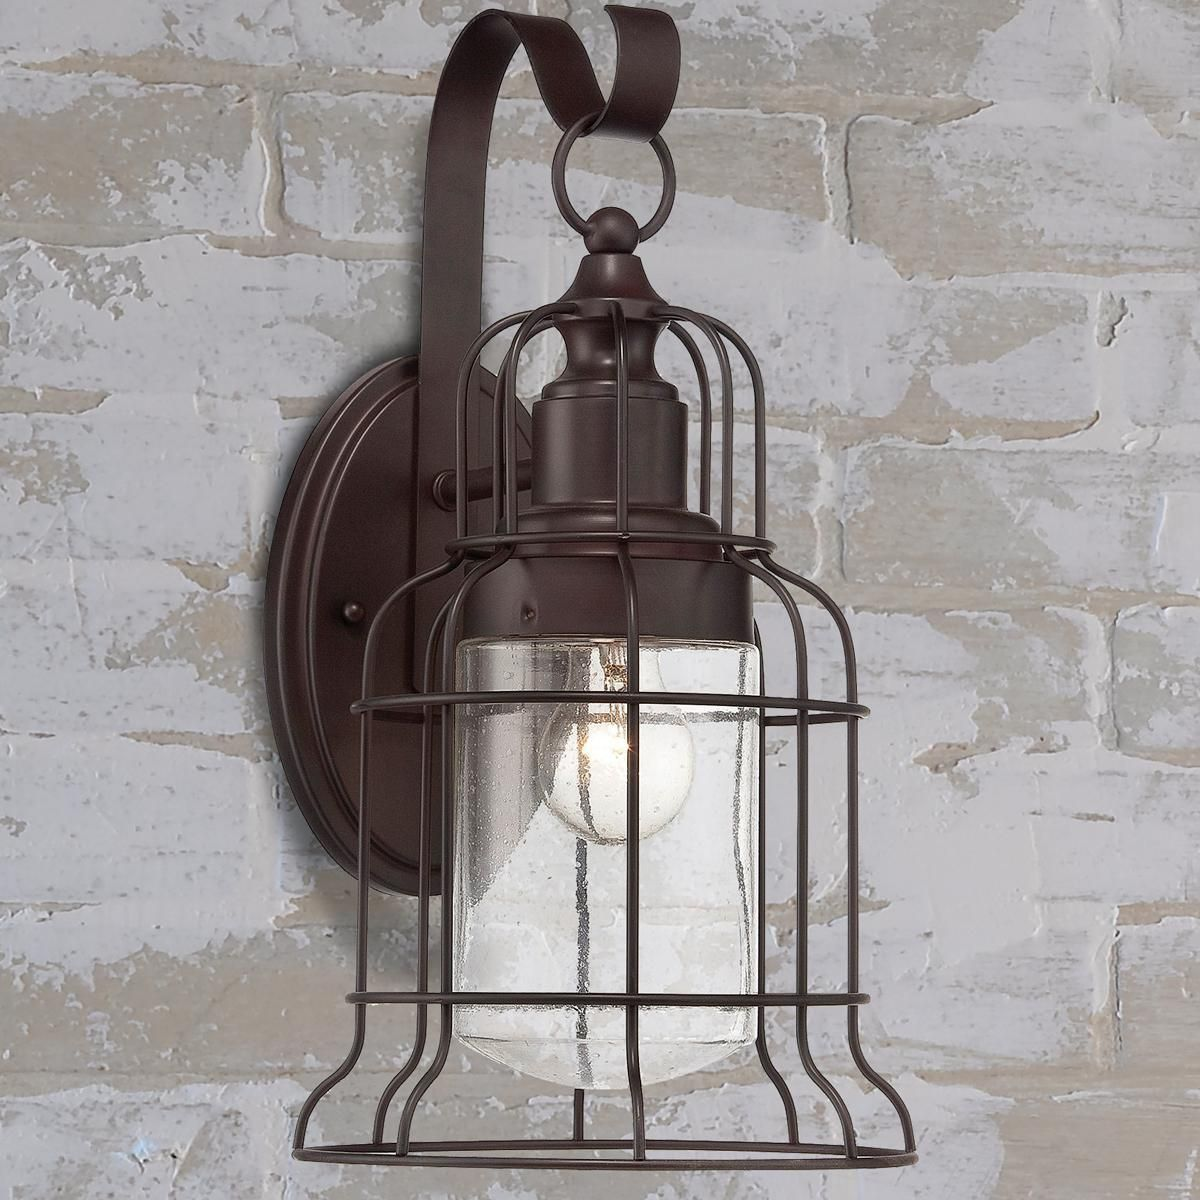 Large Industrial Oceanside Wall Sconce An Adaptation To